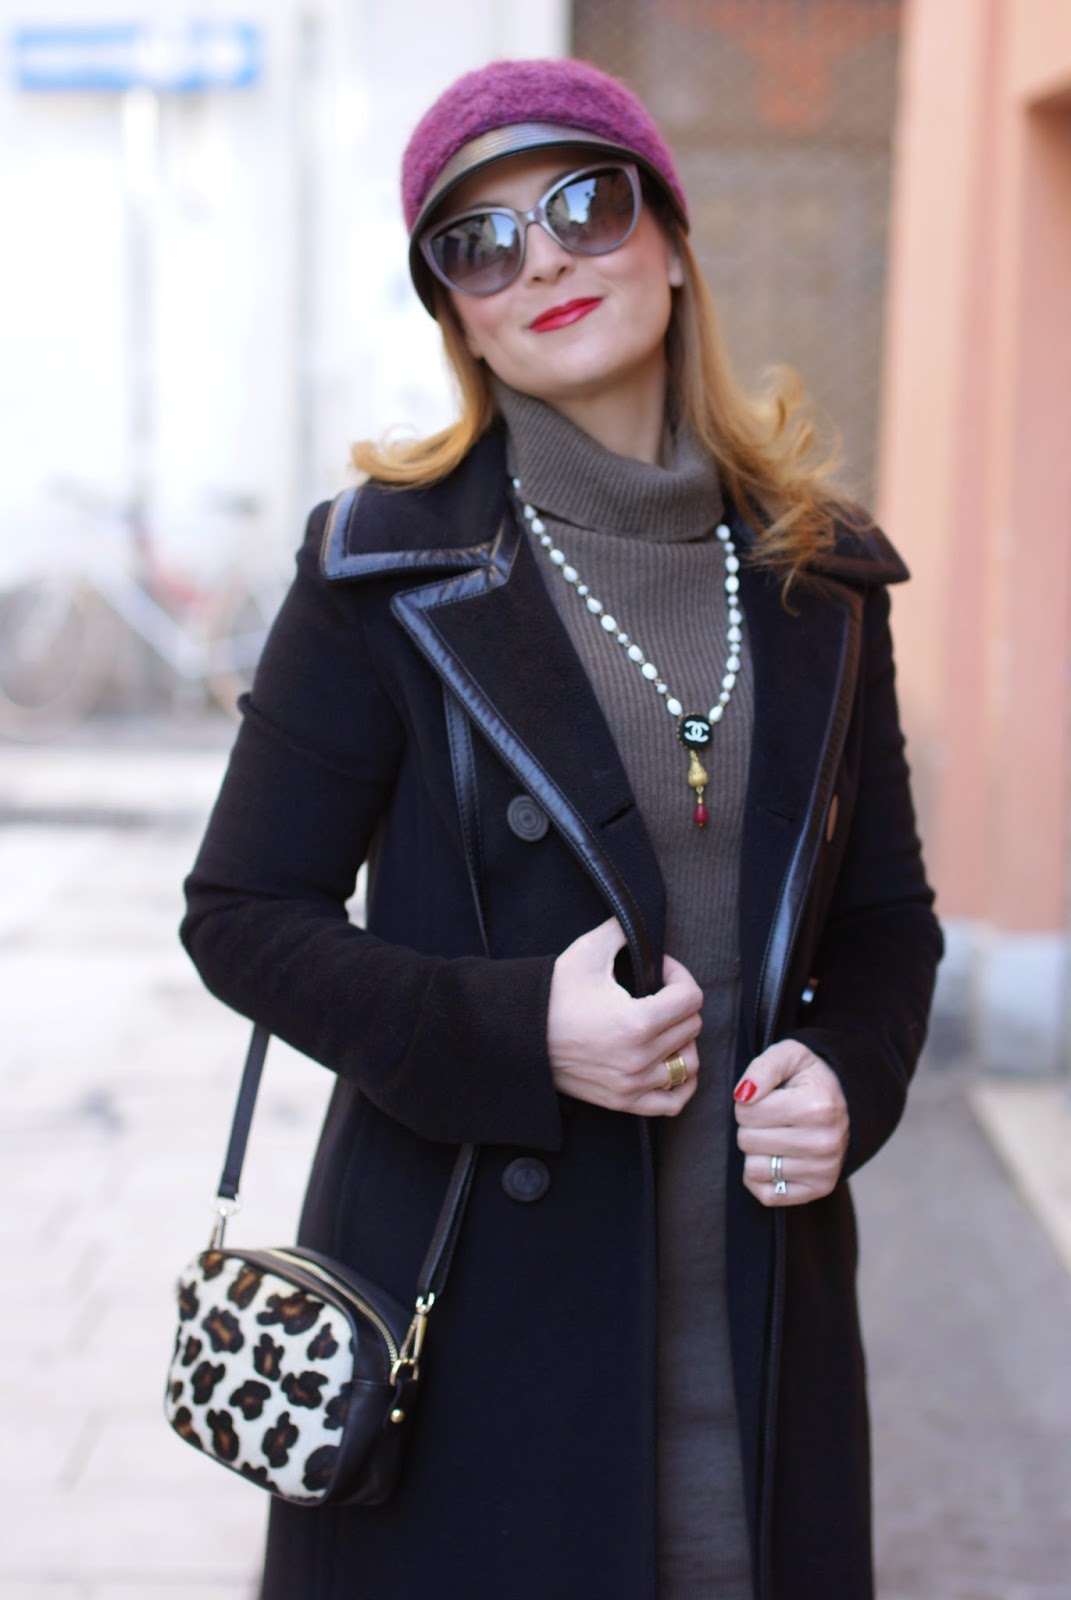 Balenciaga black coat, Chanel inspired necklace, Sofia borse Candy pochette, Fashion and Cookies, fashion blogger